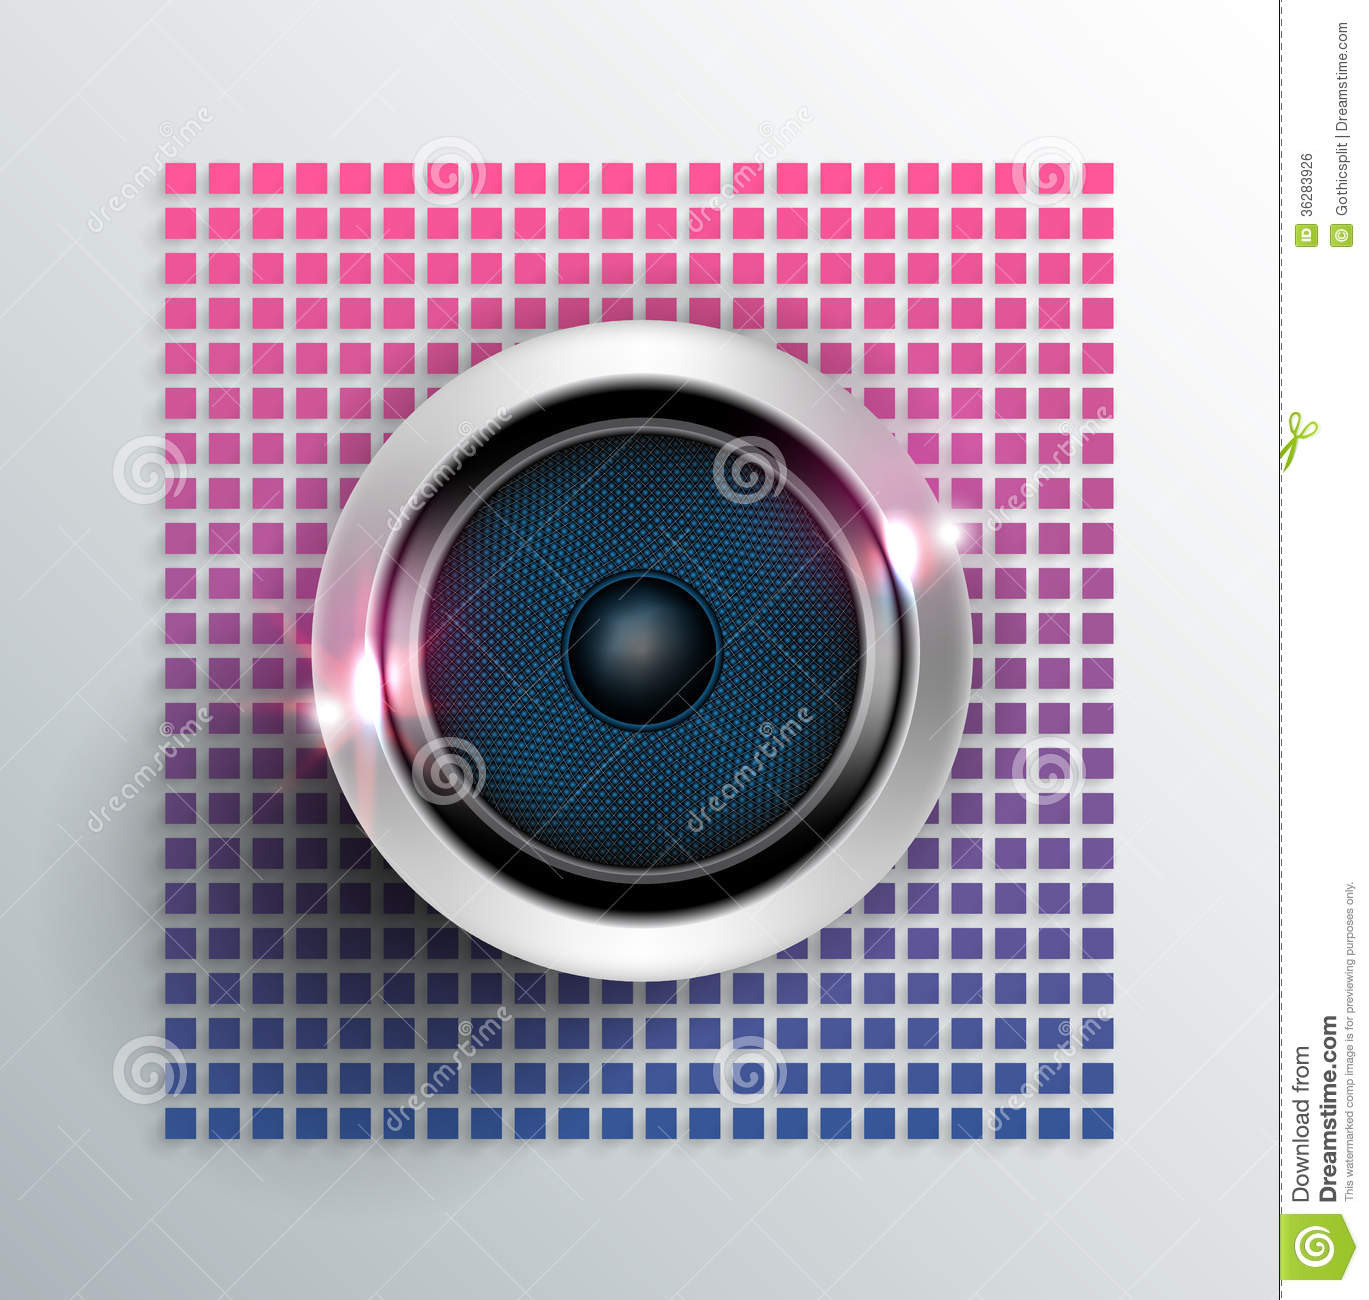 Cool Music Speakers Music Speaker Royalty Free Stock Image Image 36283926